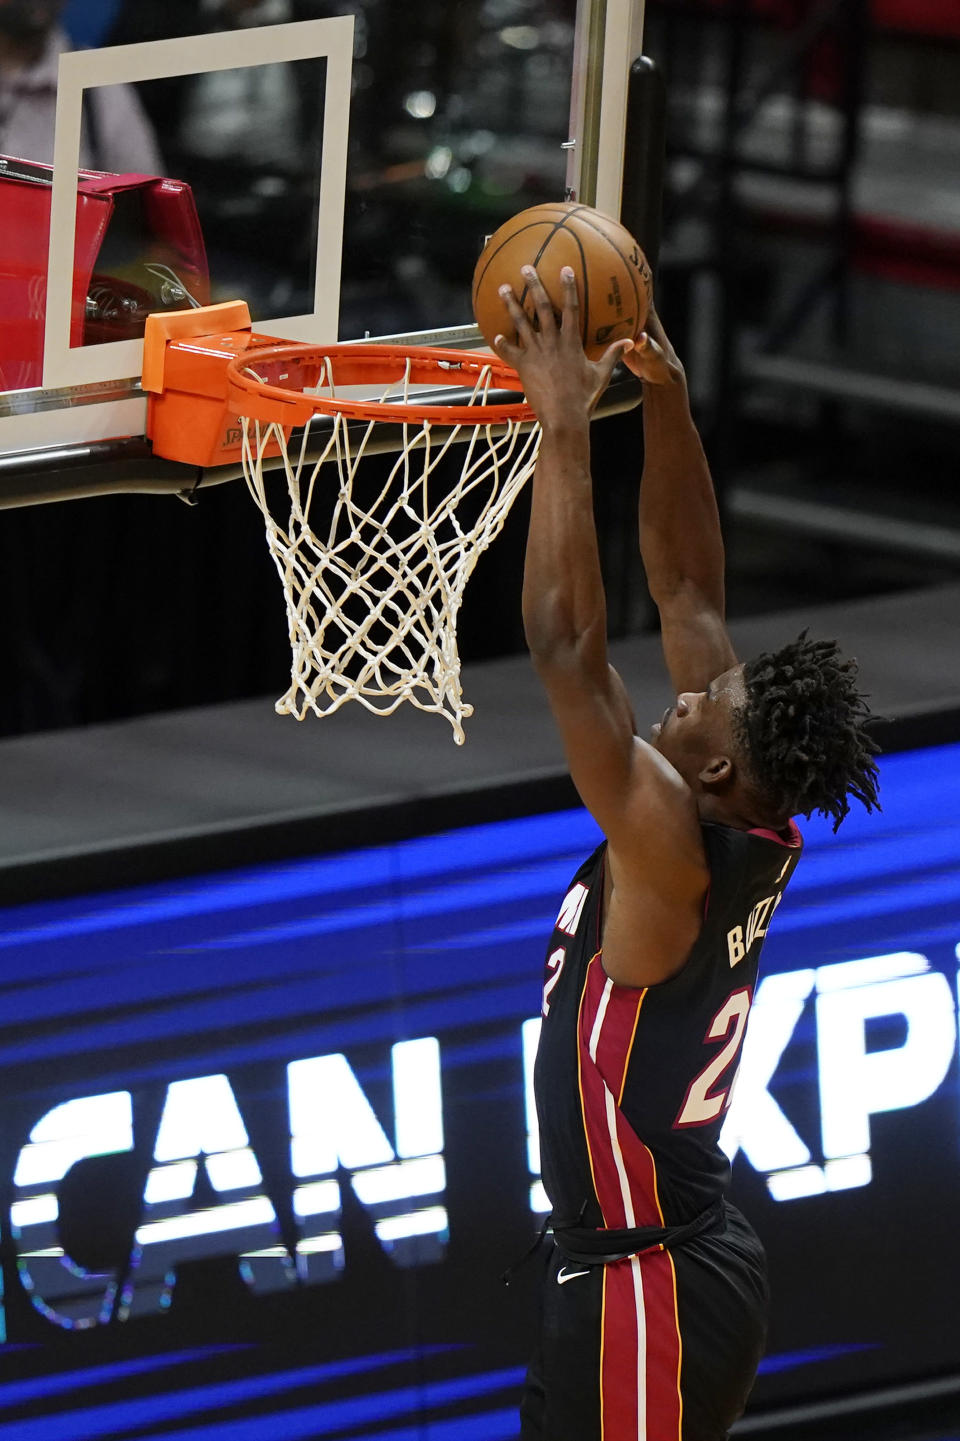 Miami Heat forward Jimmy Butler dunks during the first half of an NBA basketball game against the Minnesota Timberwolves, Friday, May 7, 2021, in Miami. (AP Photo/Wilfredo Lee)